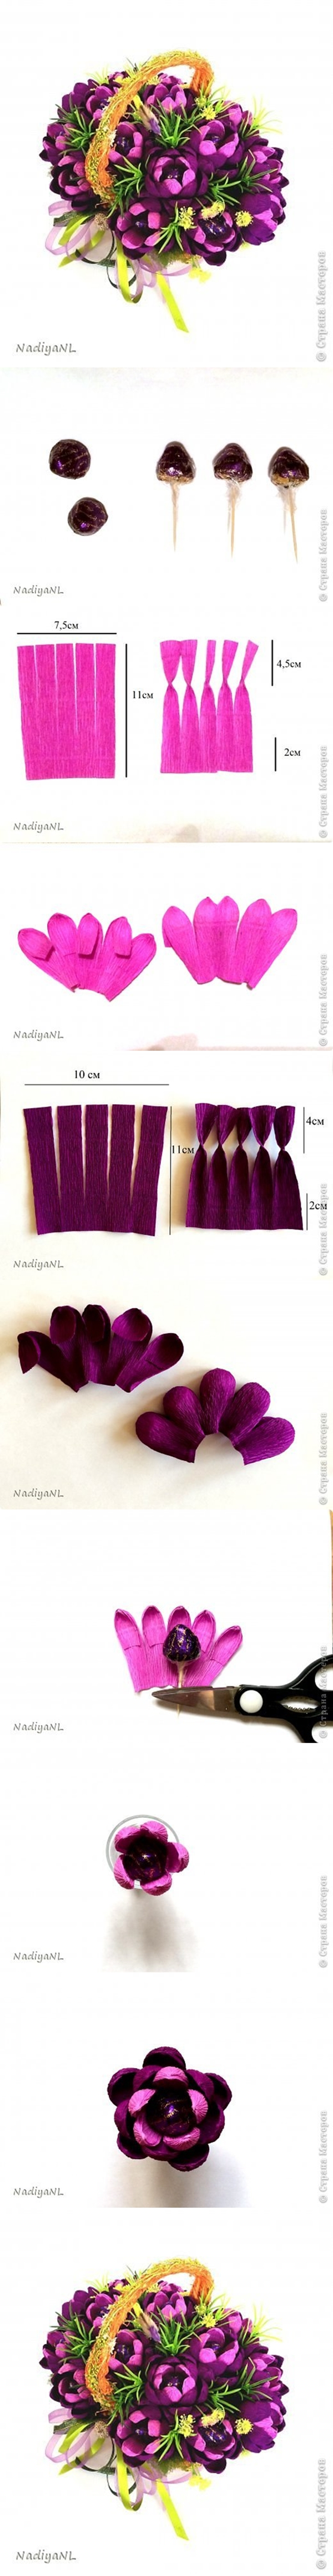 Diy Beautiful Chocolate Flower Bouquet Fab Art Diy Tutorials